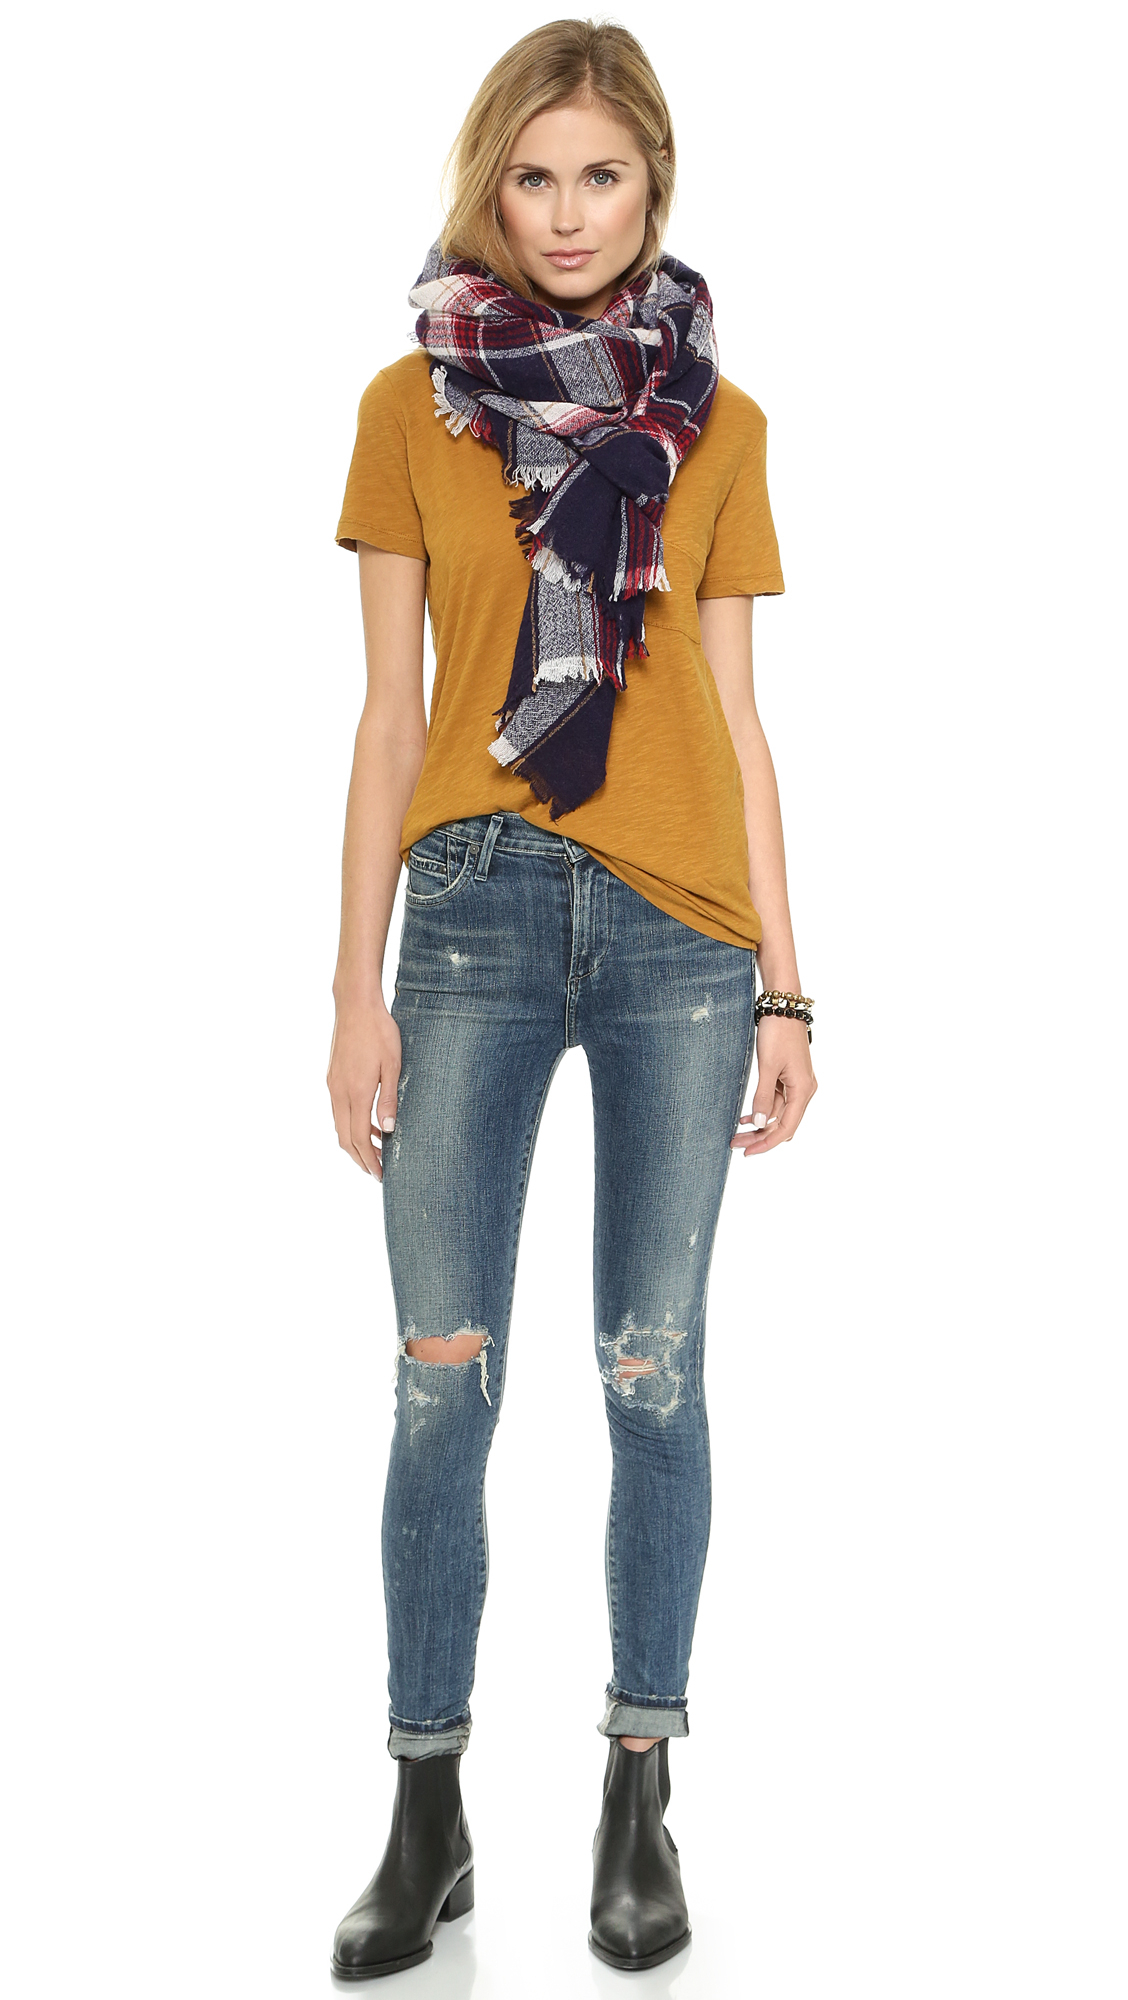 eb5b15b2afc8 Madewell Slub V Neck Pocket Tee - True Black in Yellow - Lyst